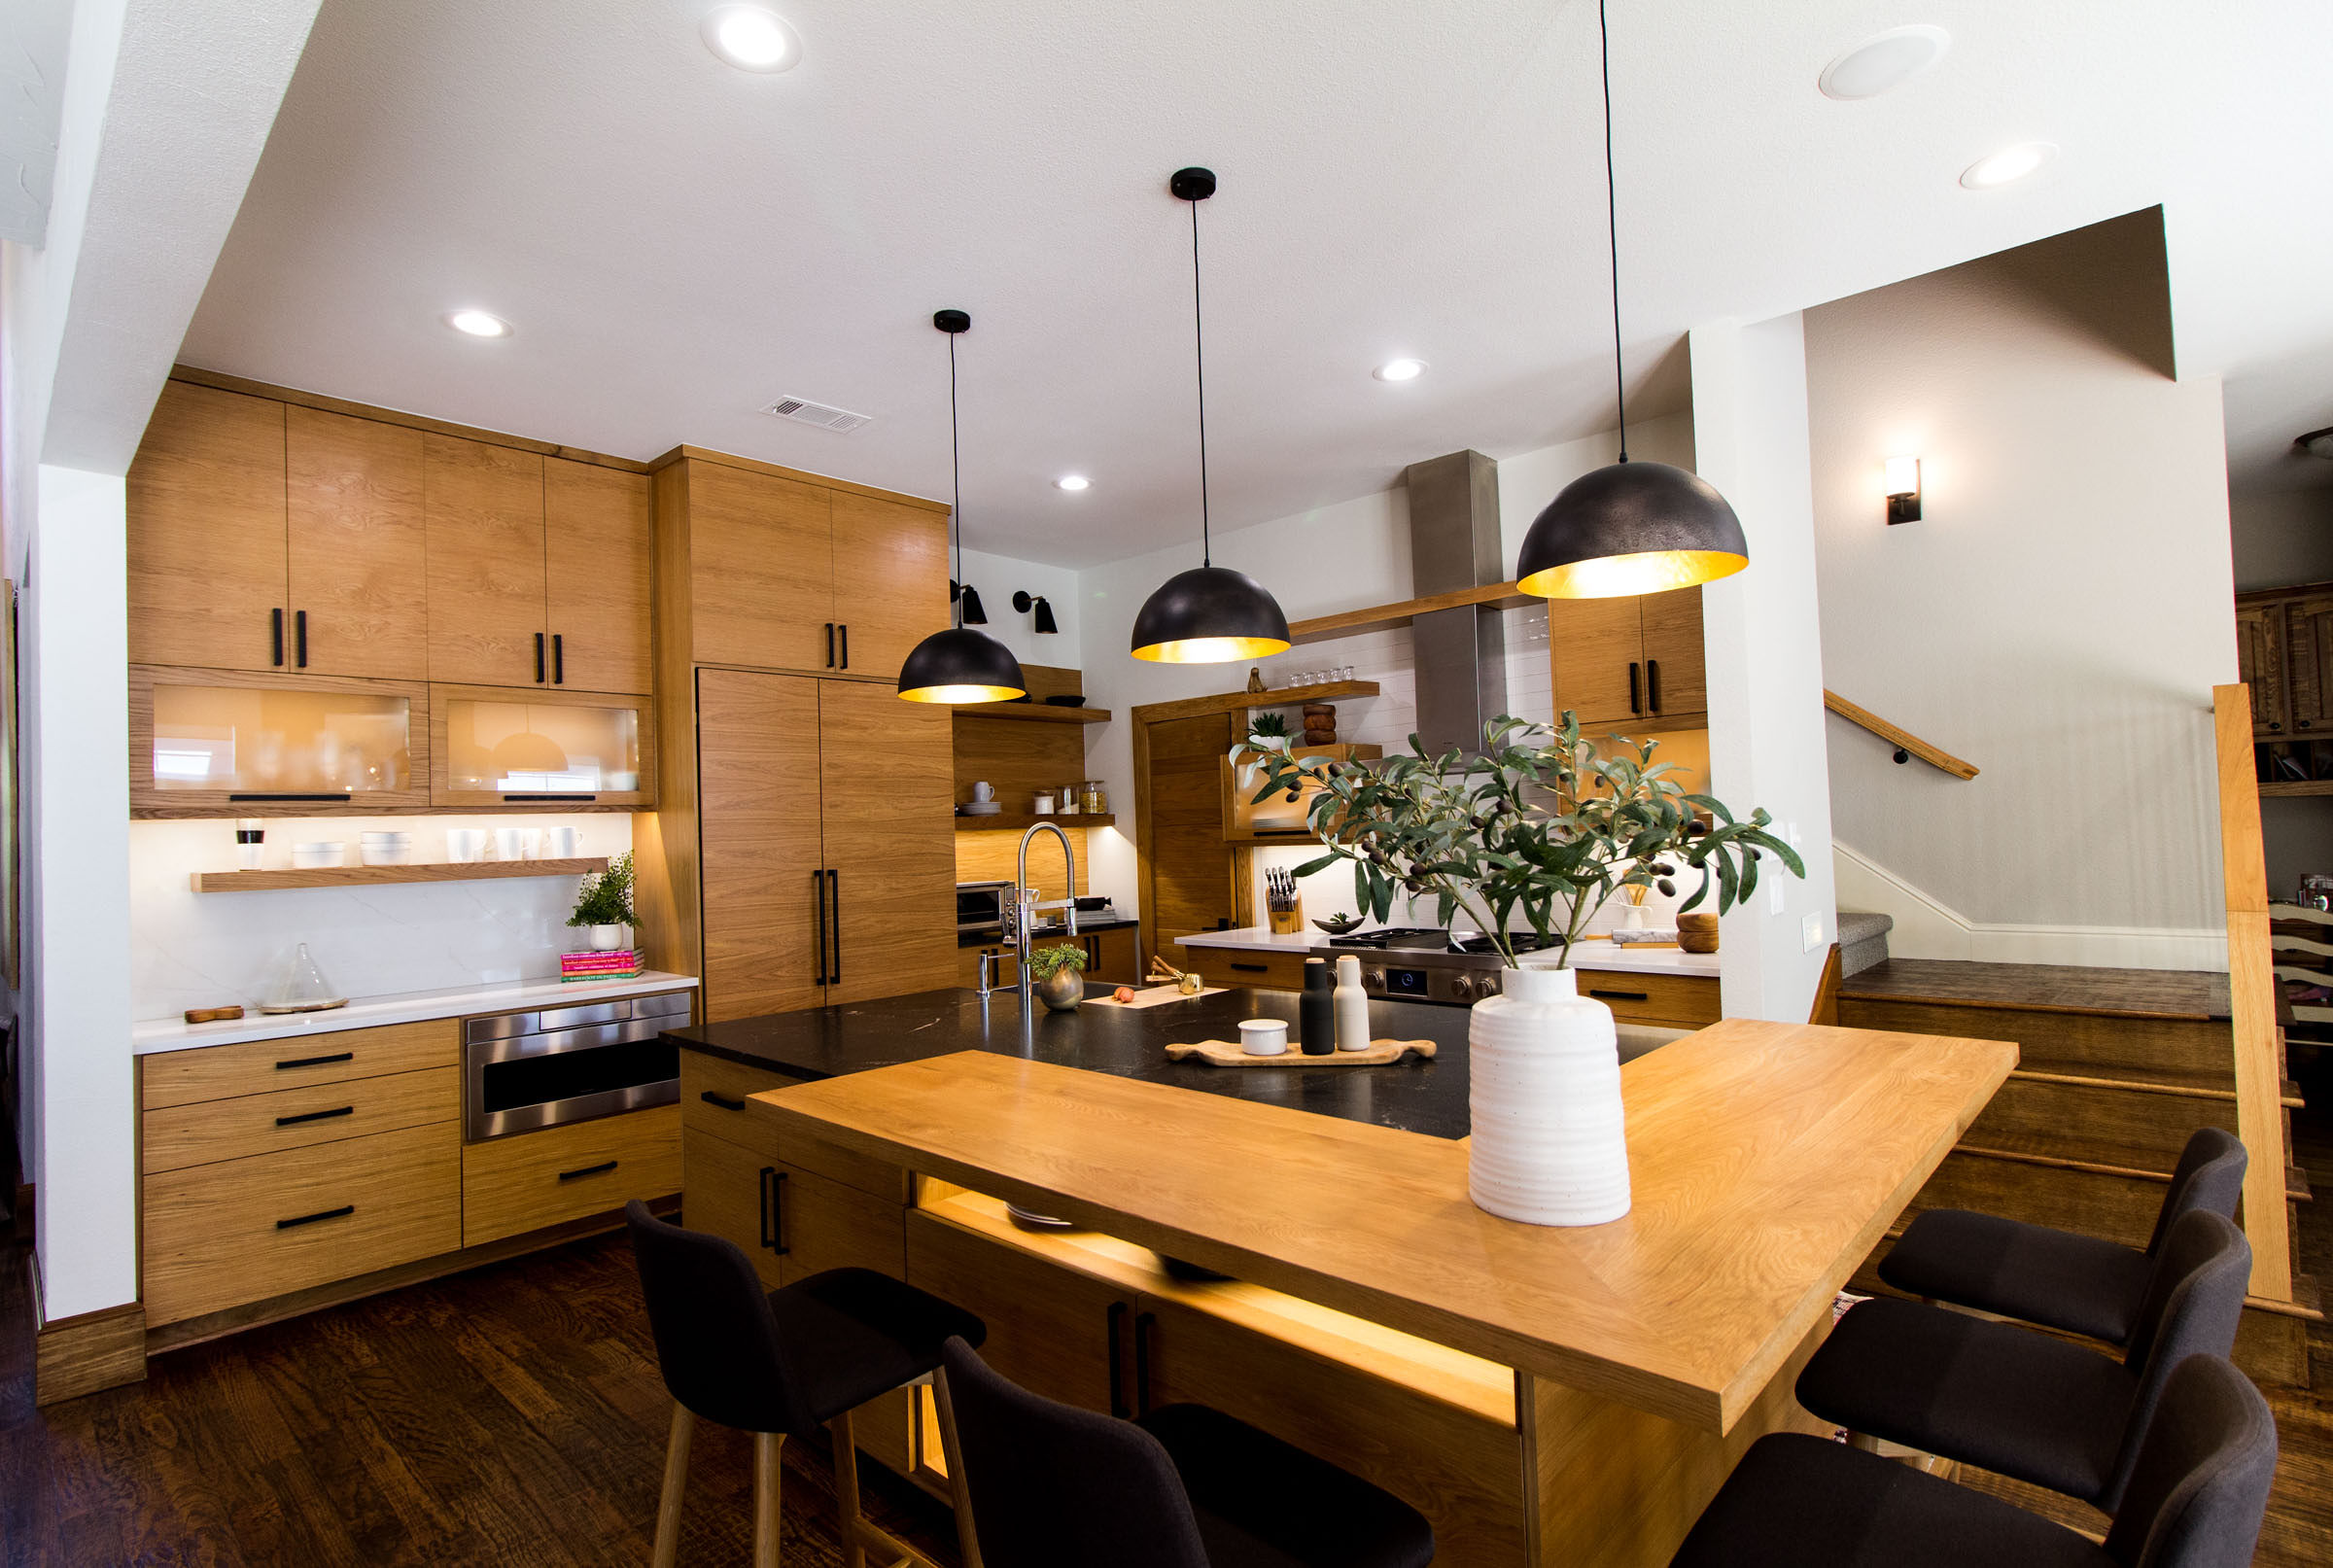 Just the right angle to see the hidden storage areas of this beautiful kitchen island.